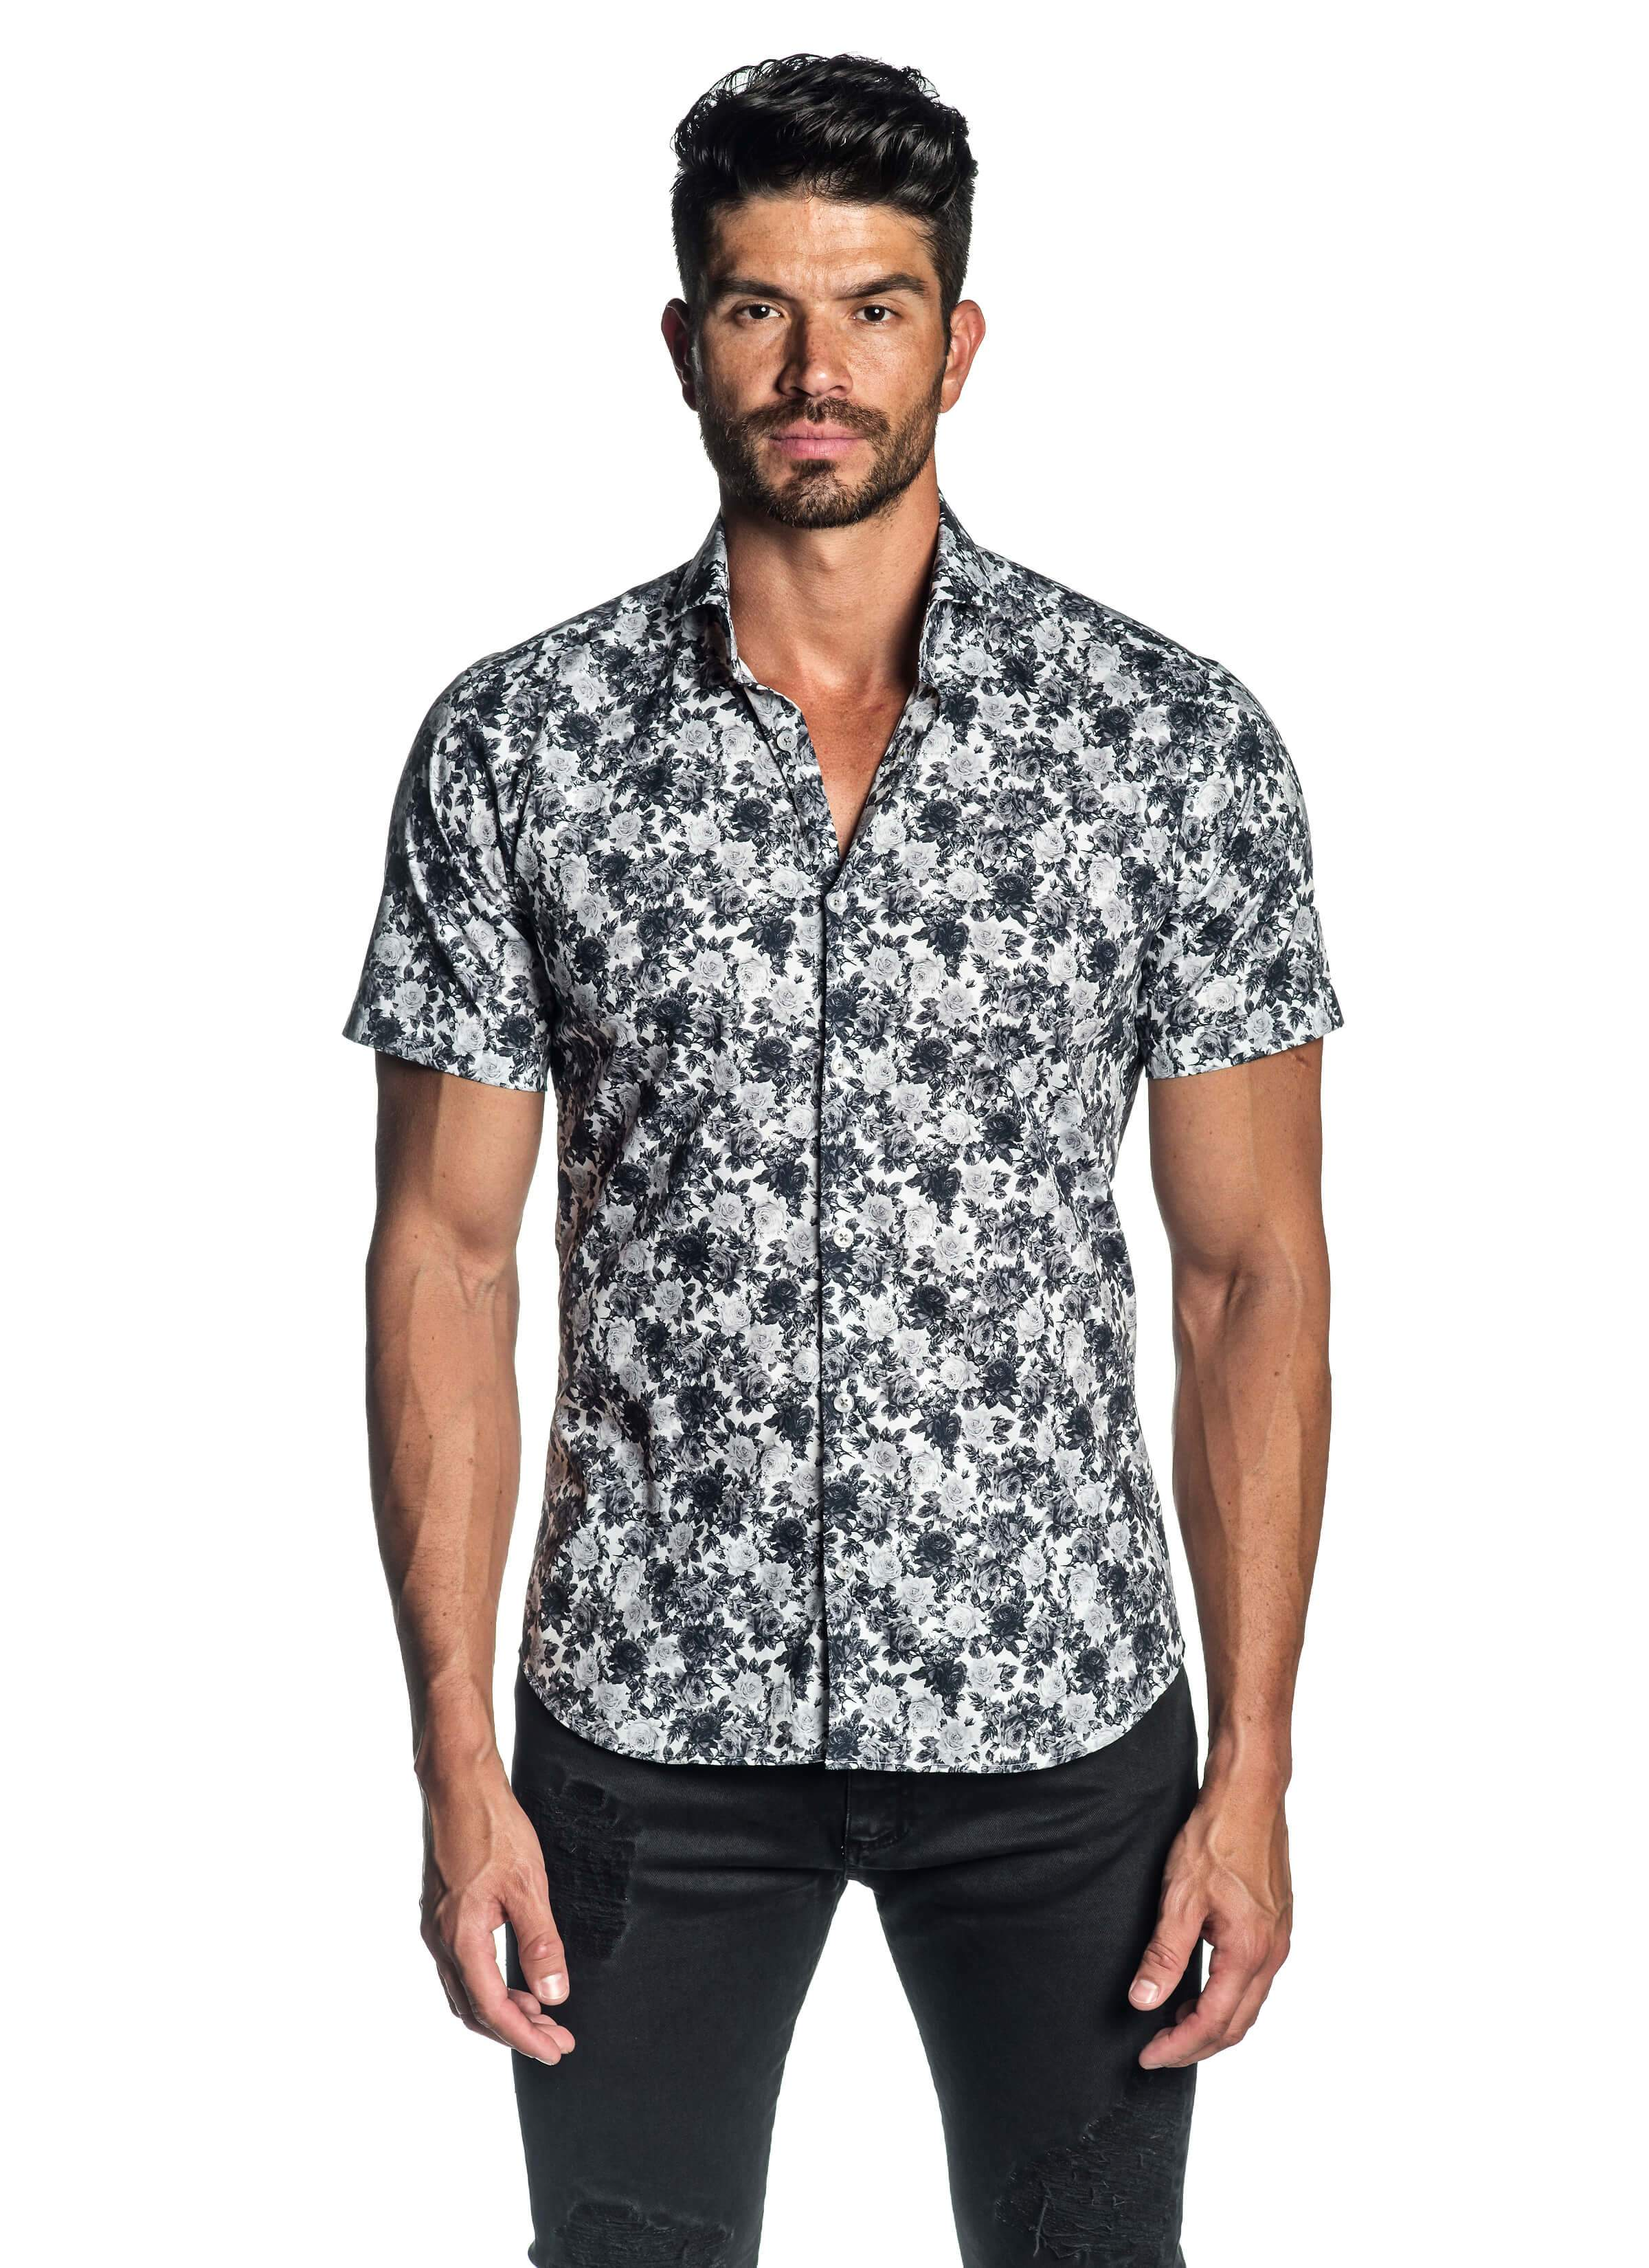 White and Grey Floral Short Sleeve Shirt for Men AH-ITA-T-2106-SS - Front - Jared Lang